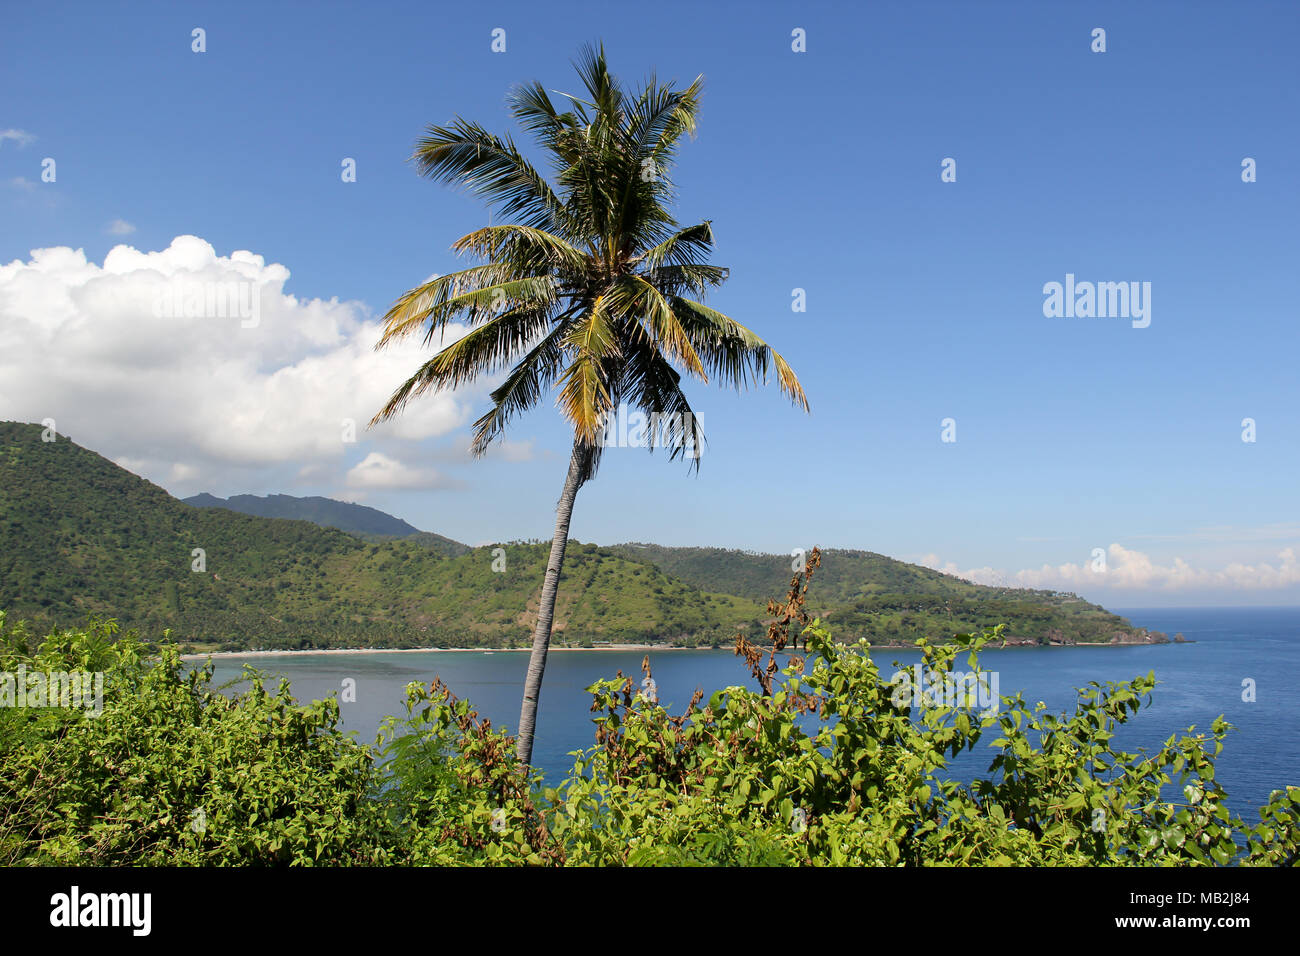 An isolated coconut tree along the Lombok Strait in Indonesia - Stock Image